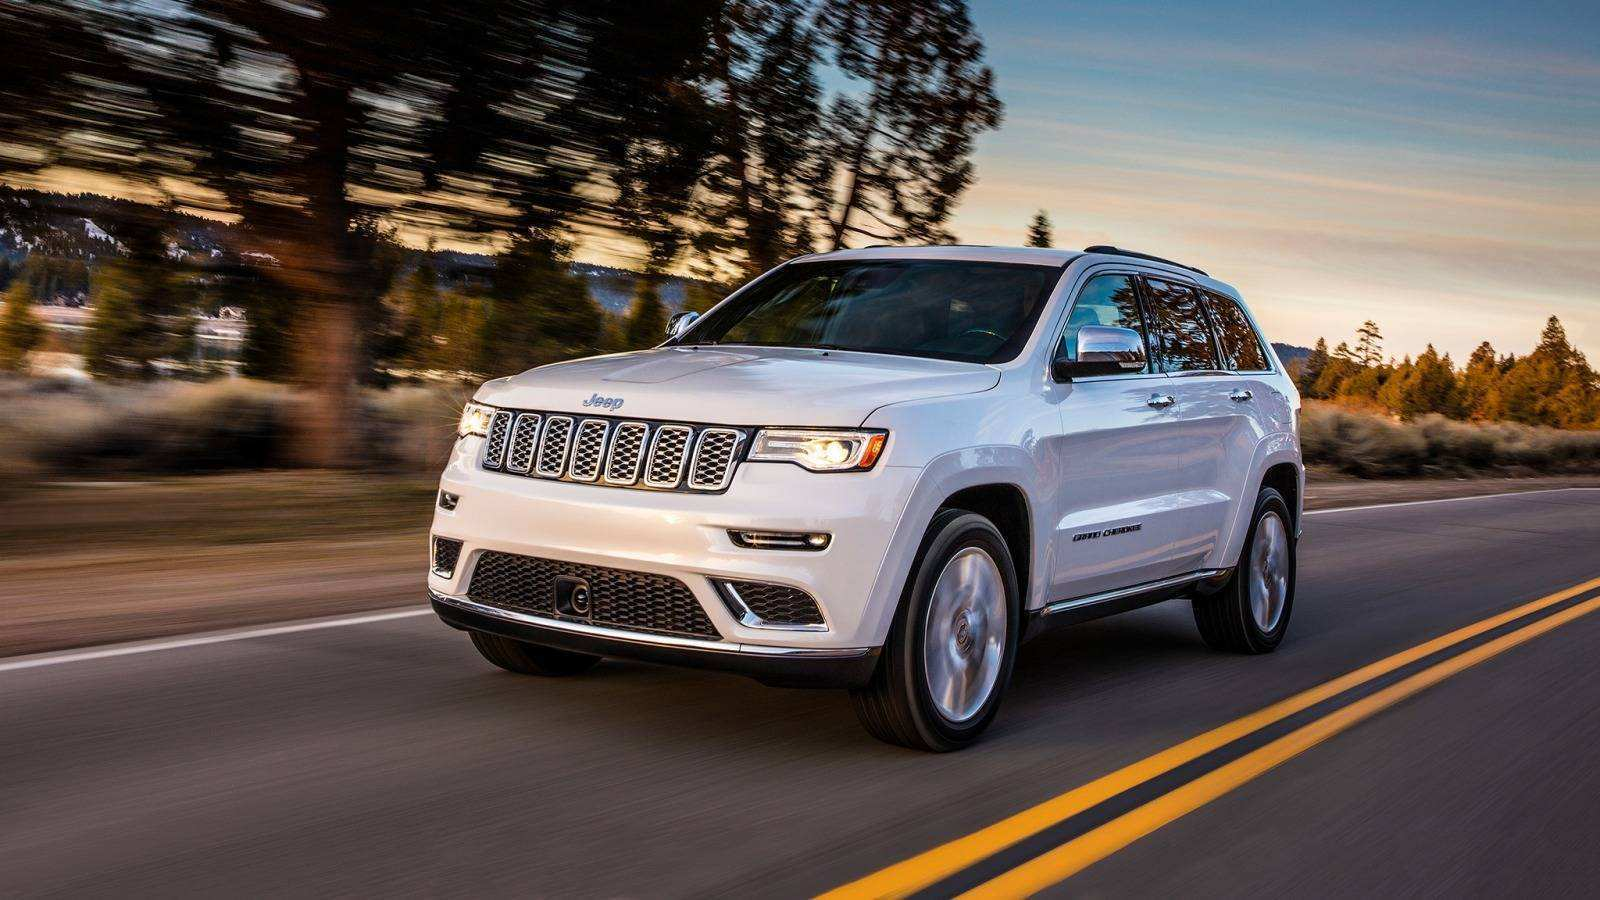 70 Best Review The 2019 Jeep Cherokee Ride Quality Release Date Price And Review Overview with The 2019 Jeep Cherokee Ride Quality Release Date Price And Review